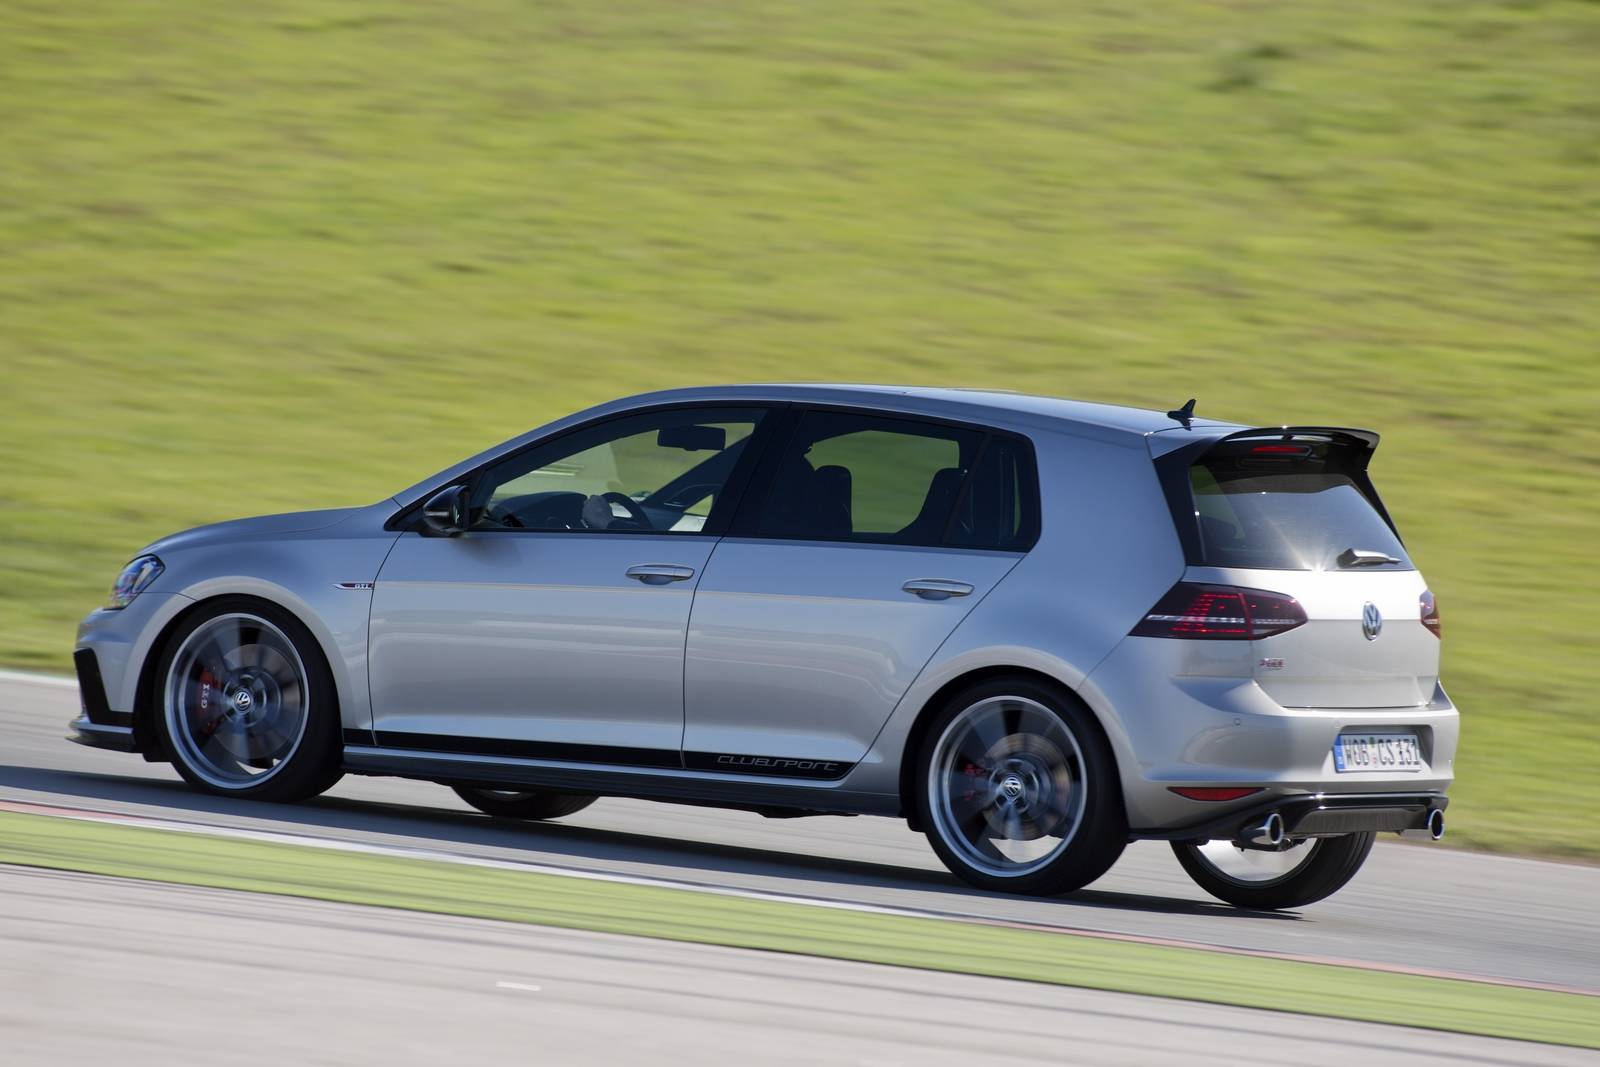 Golf Gti Top Gear >> 2016 Volkswagen Golf GTI Clubsport Review - GTspirit